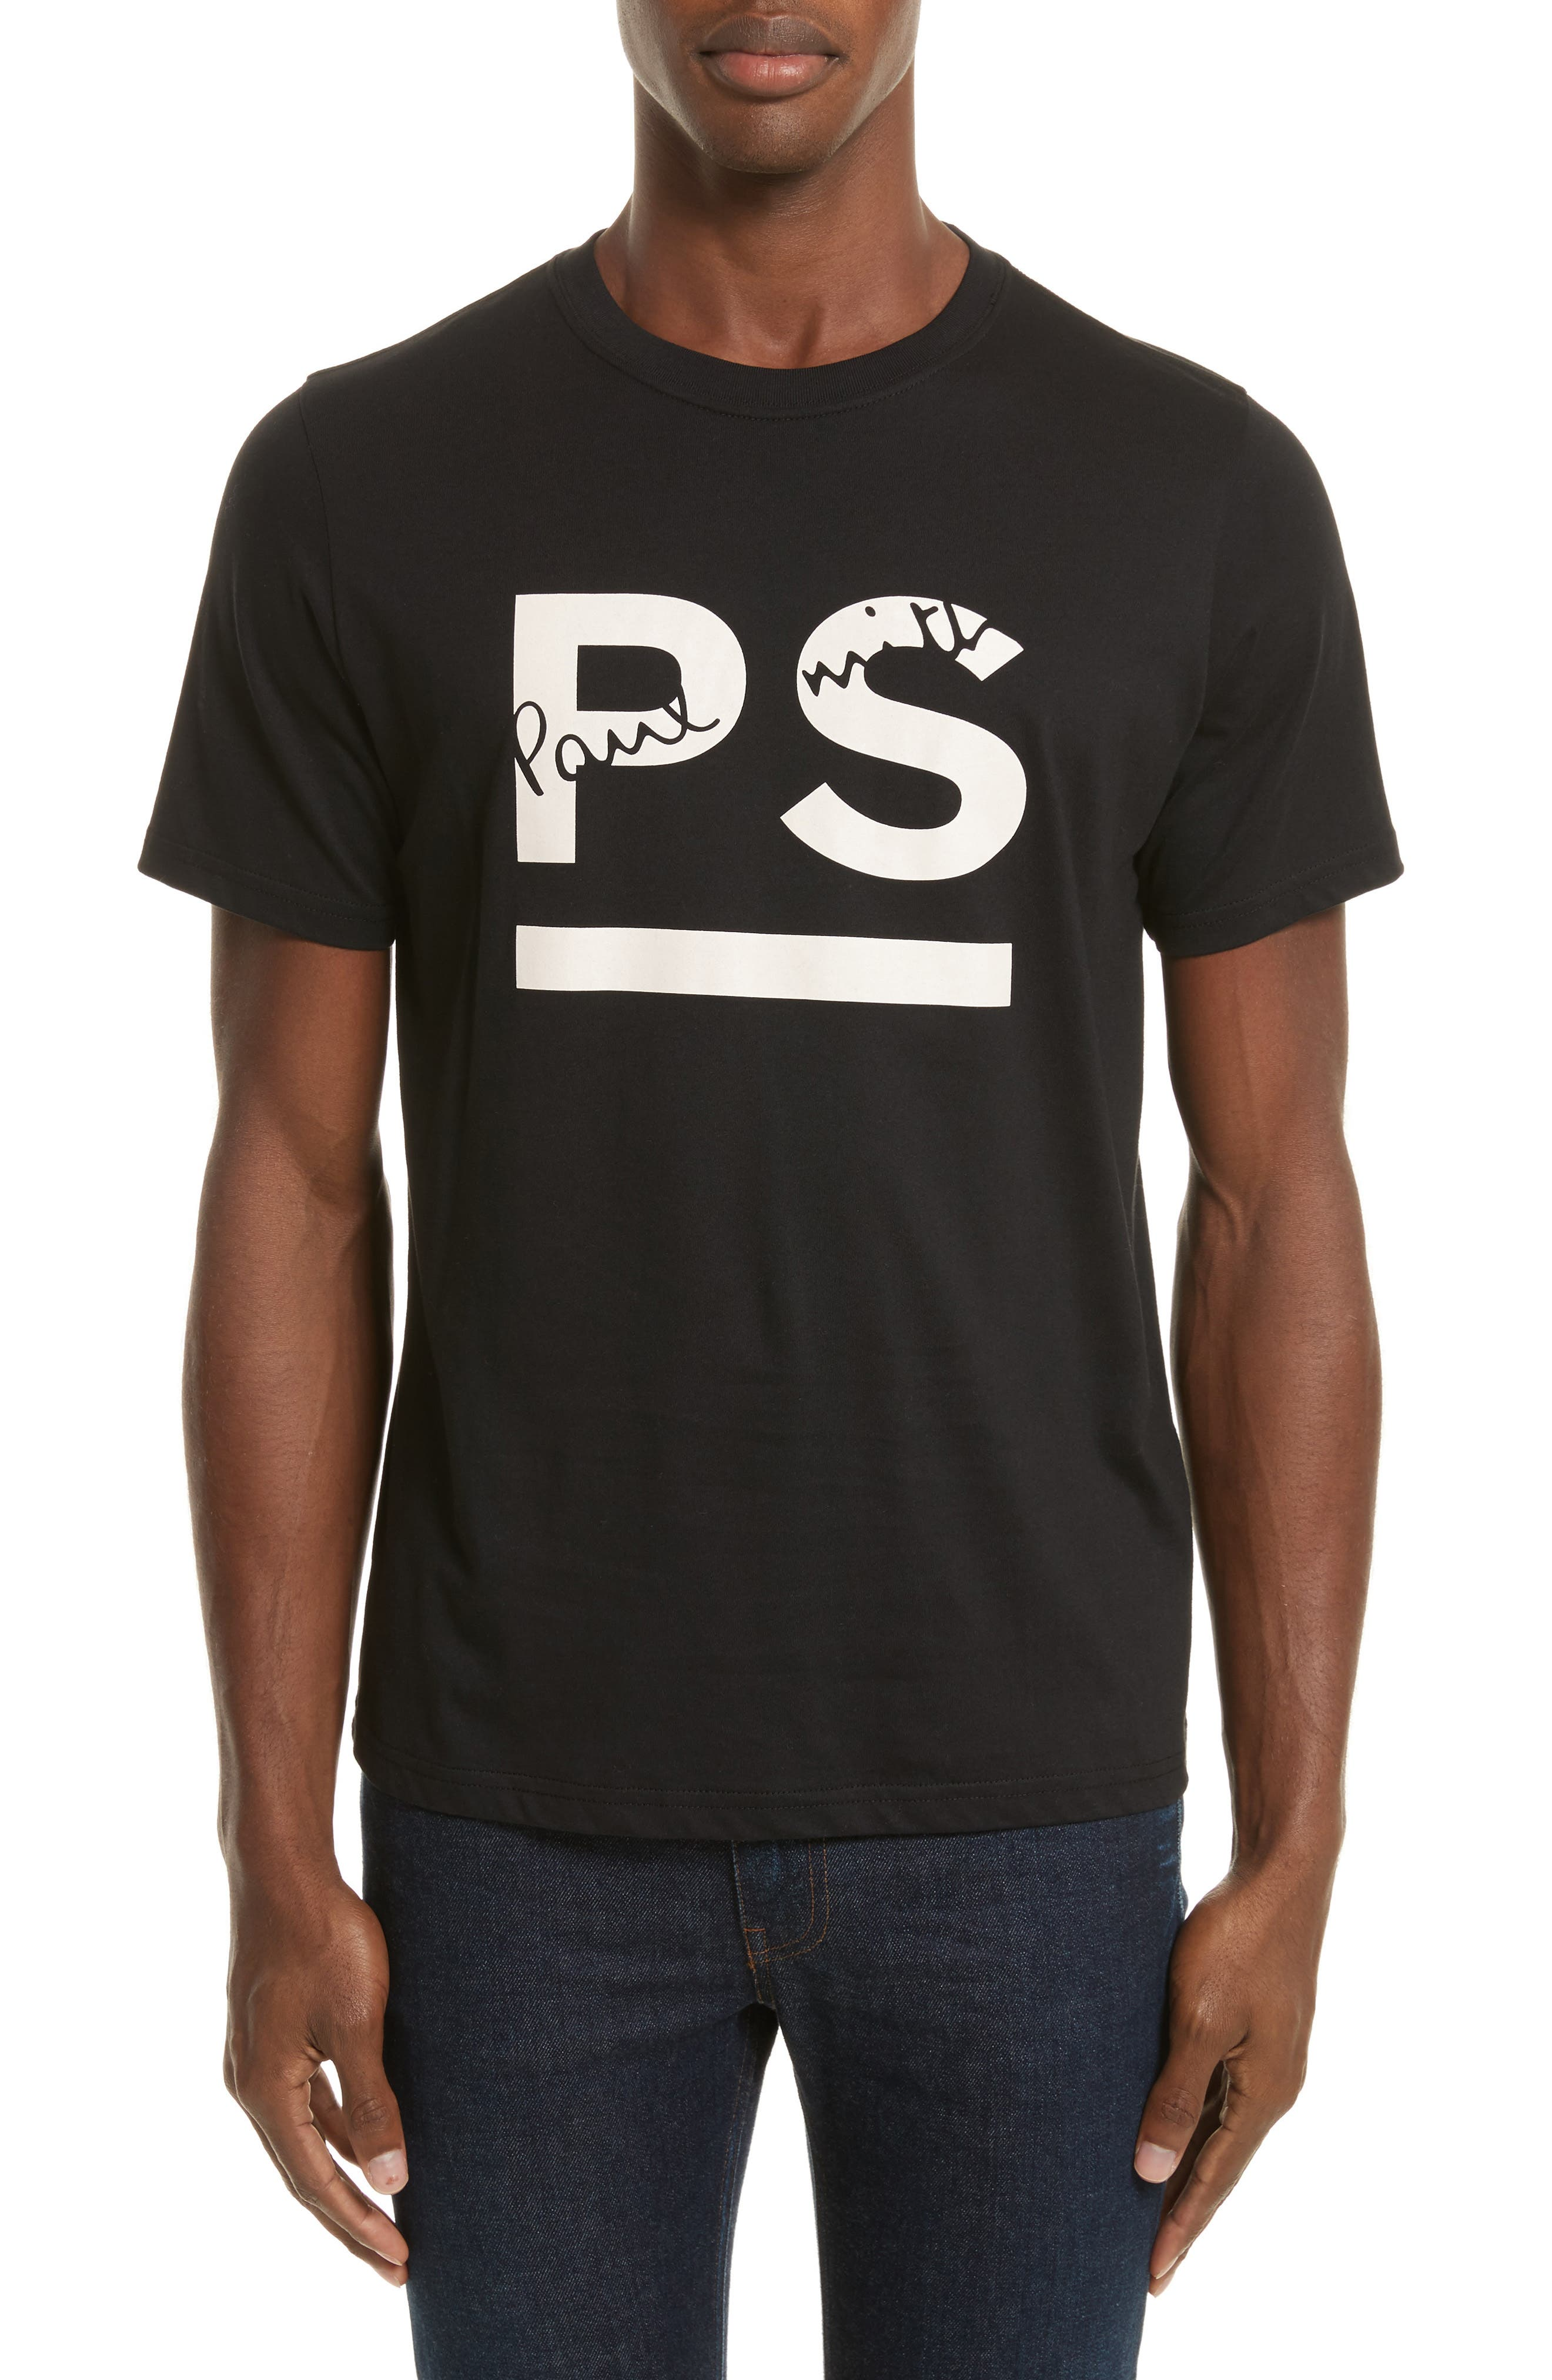 Main Image - PS Paul Smith PS Graphic T-Shirt